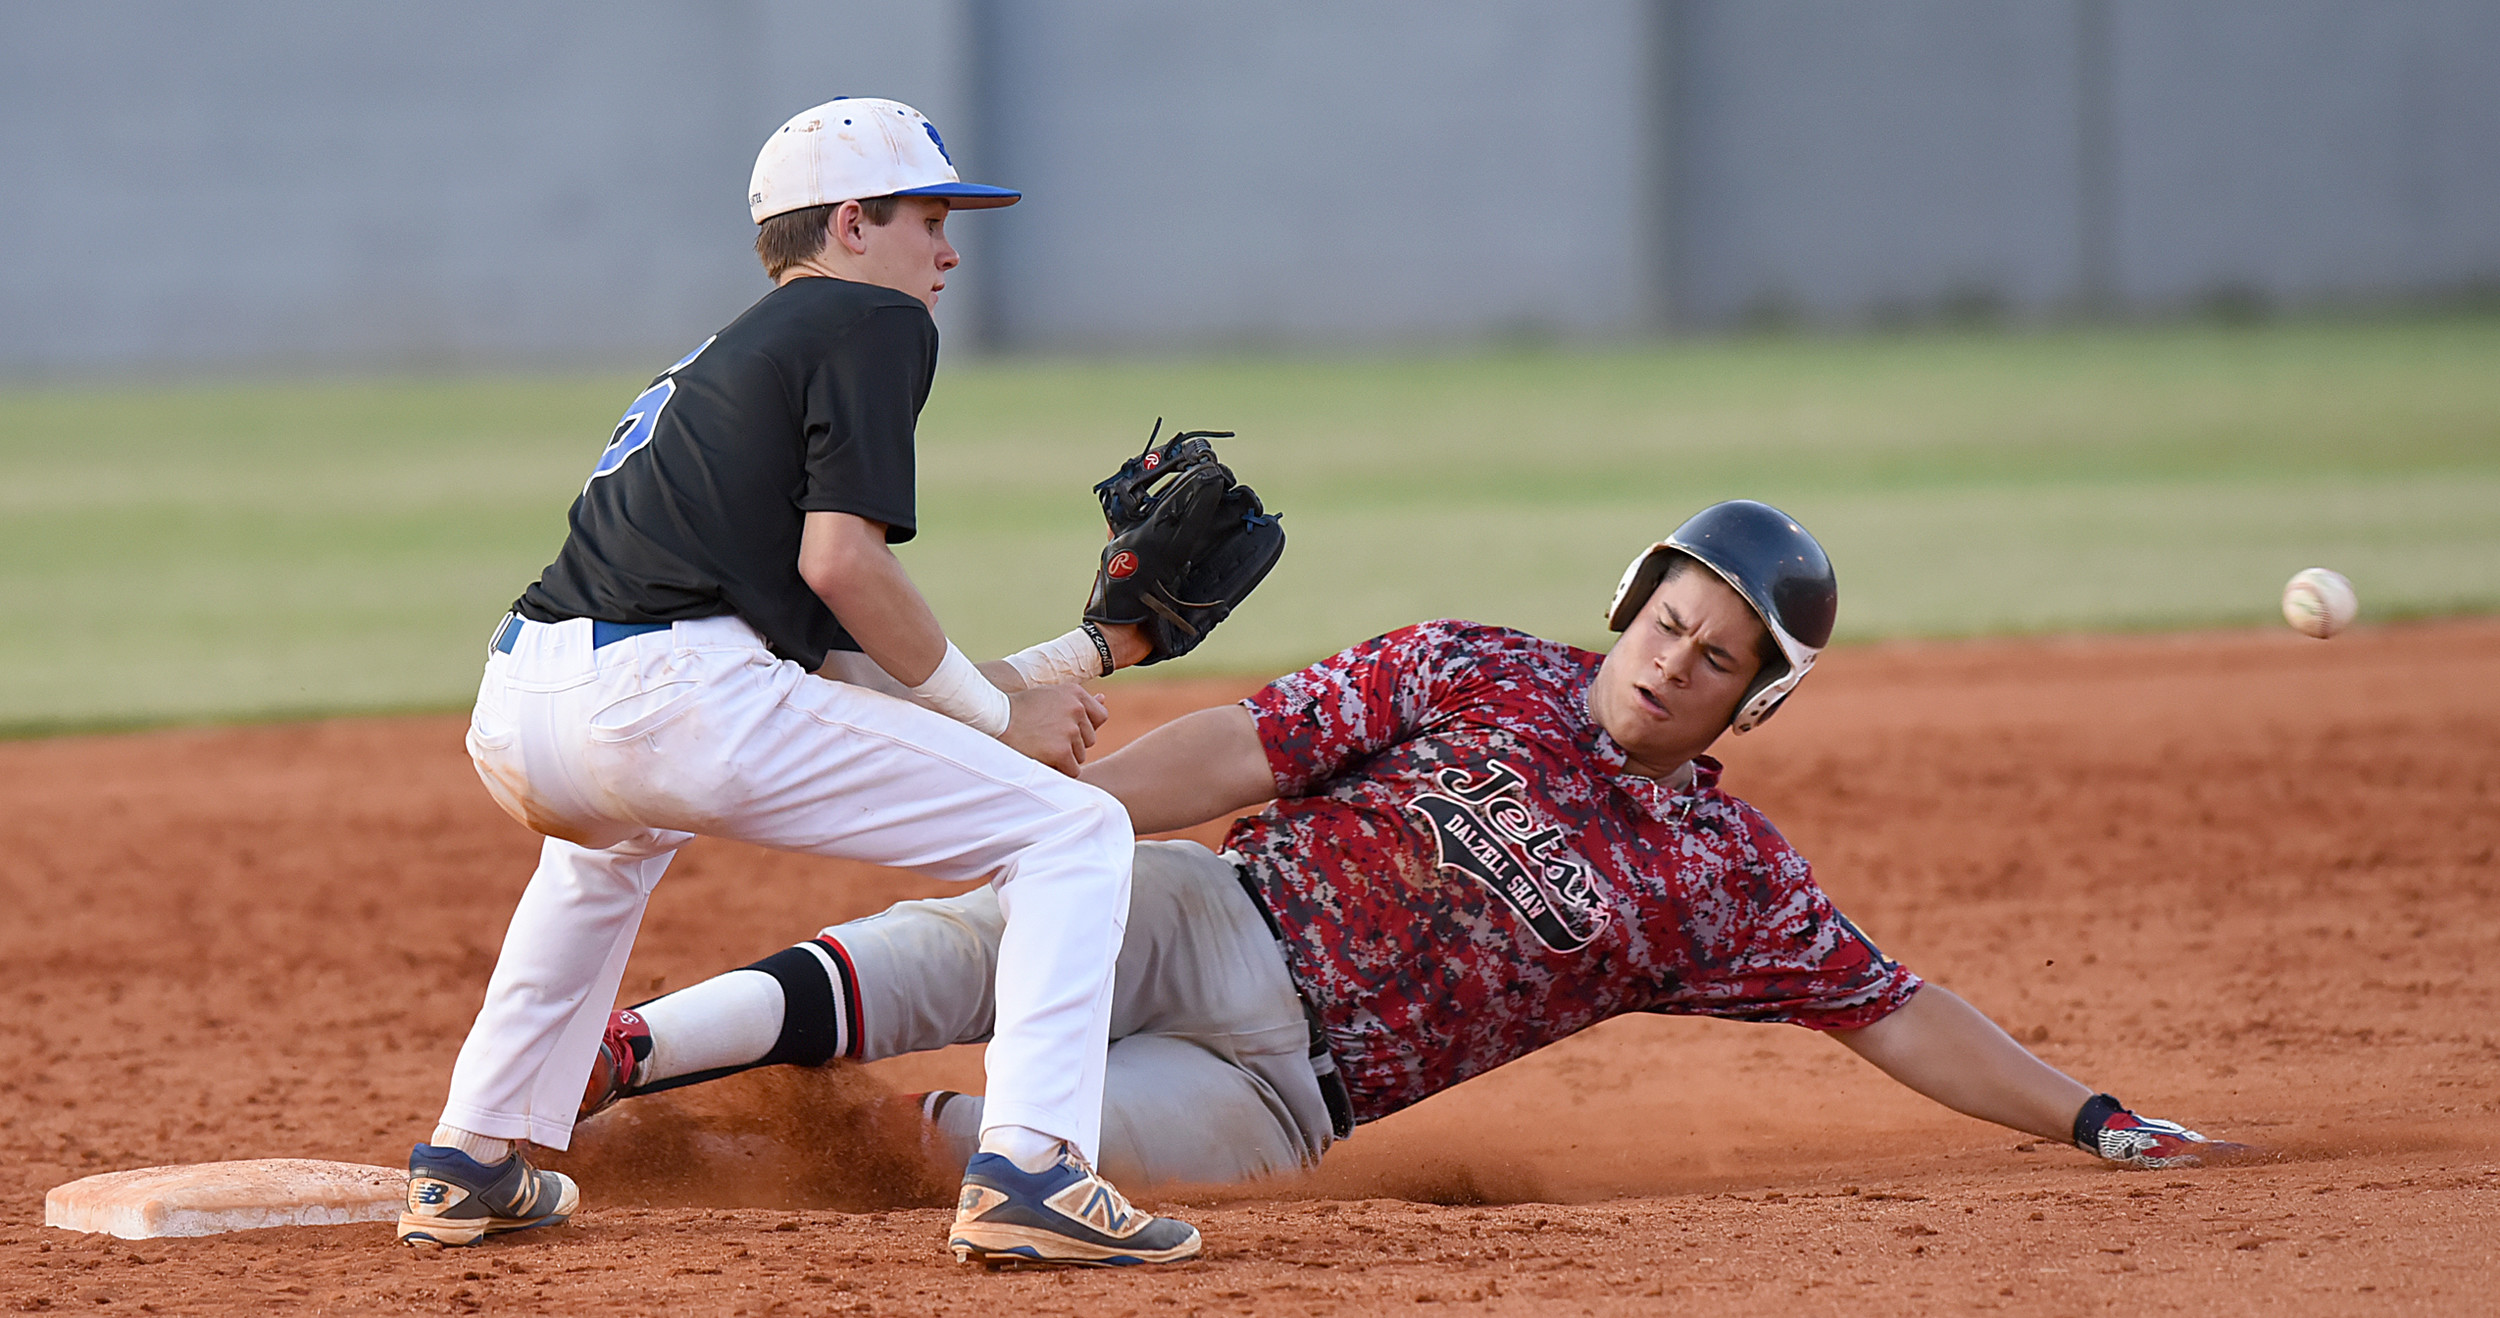 Dalzell-Shaw's Lenny Gonzalez slides safely into second base as Manning-Santee shortstop Taylor Lee waits on the throw during Post 68's 5-4 win on Friday in Manning.